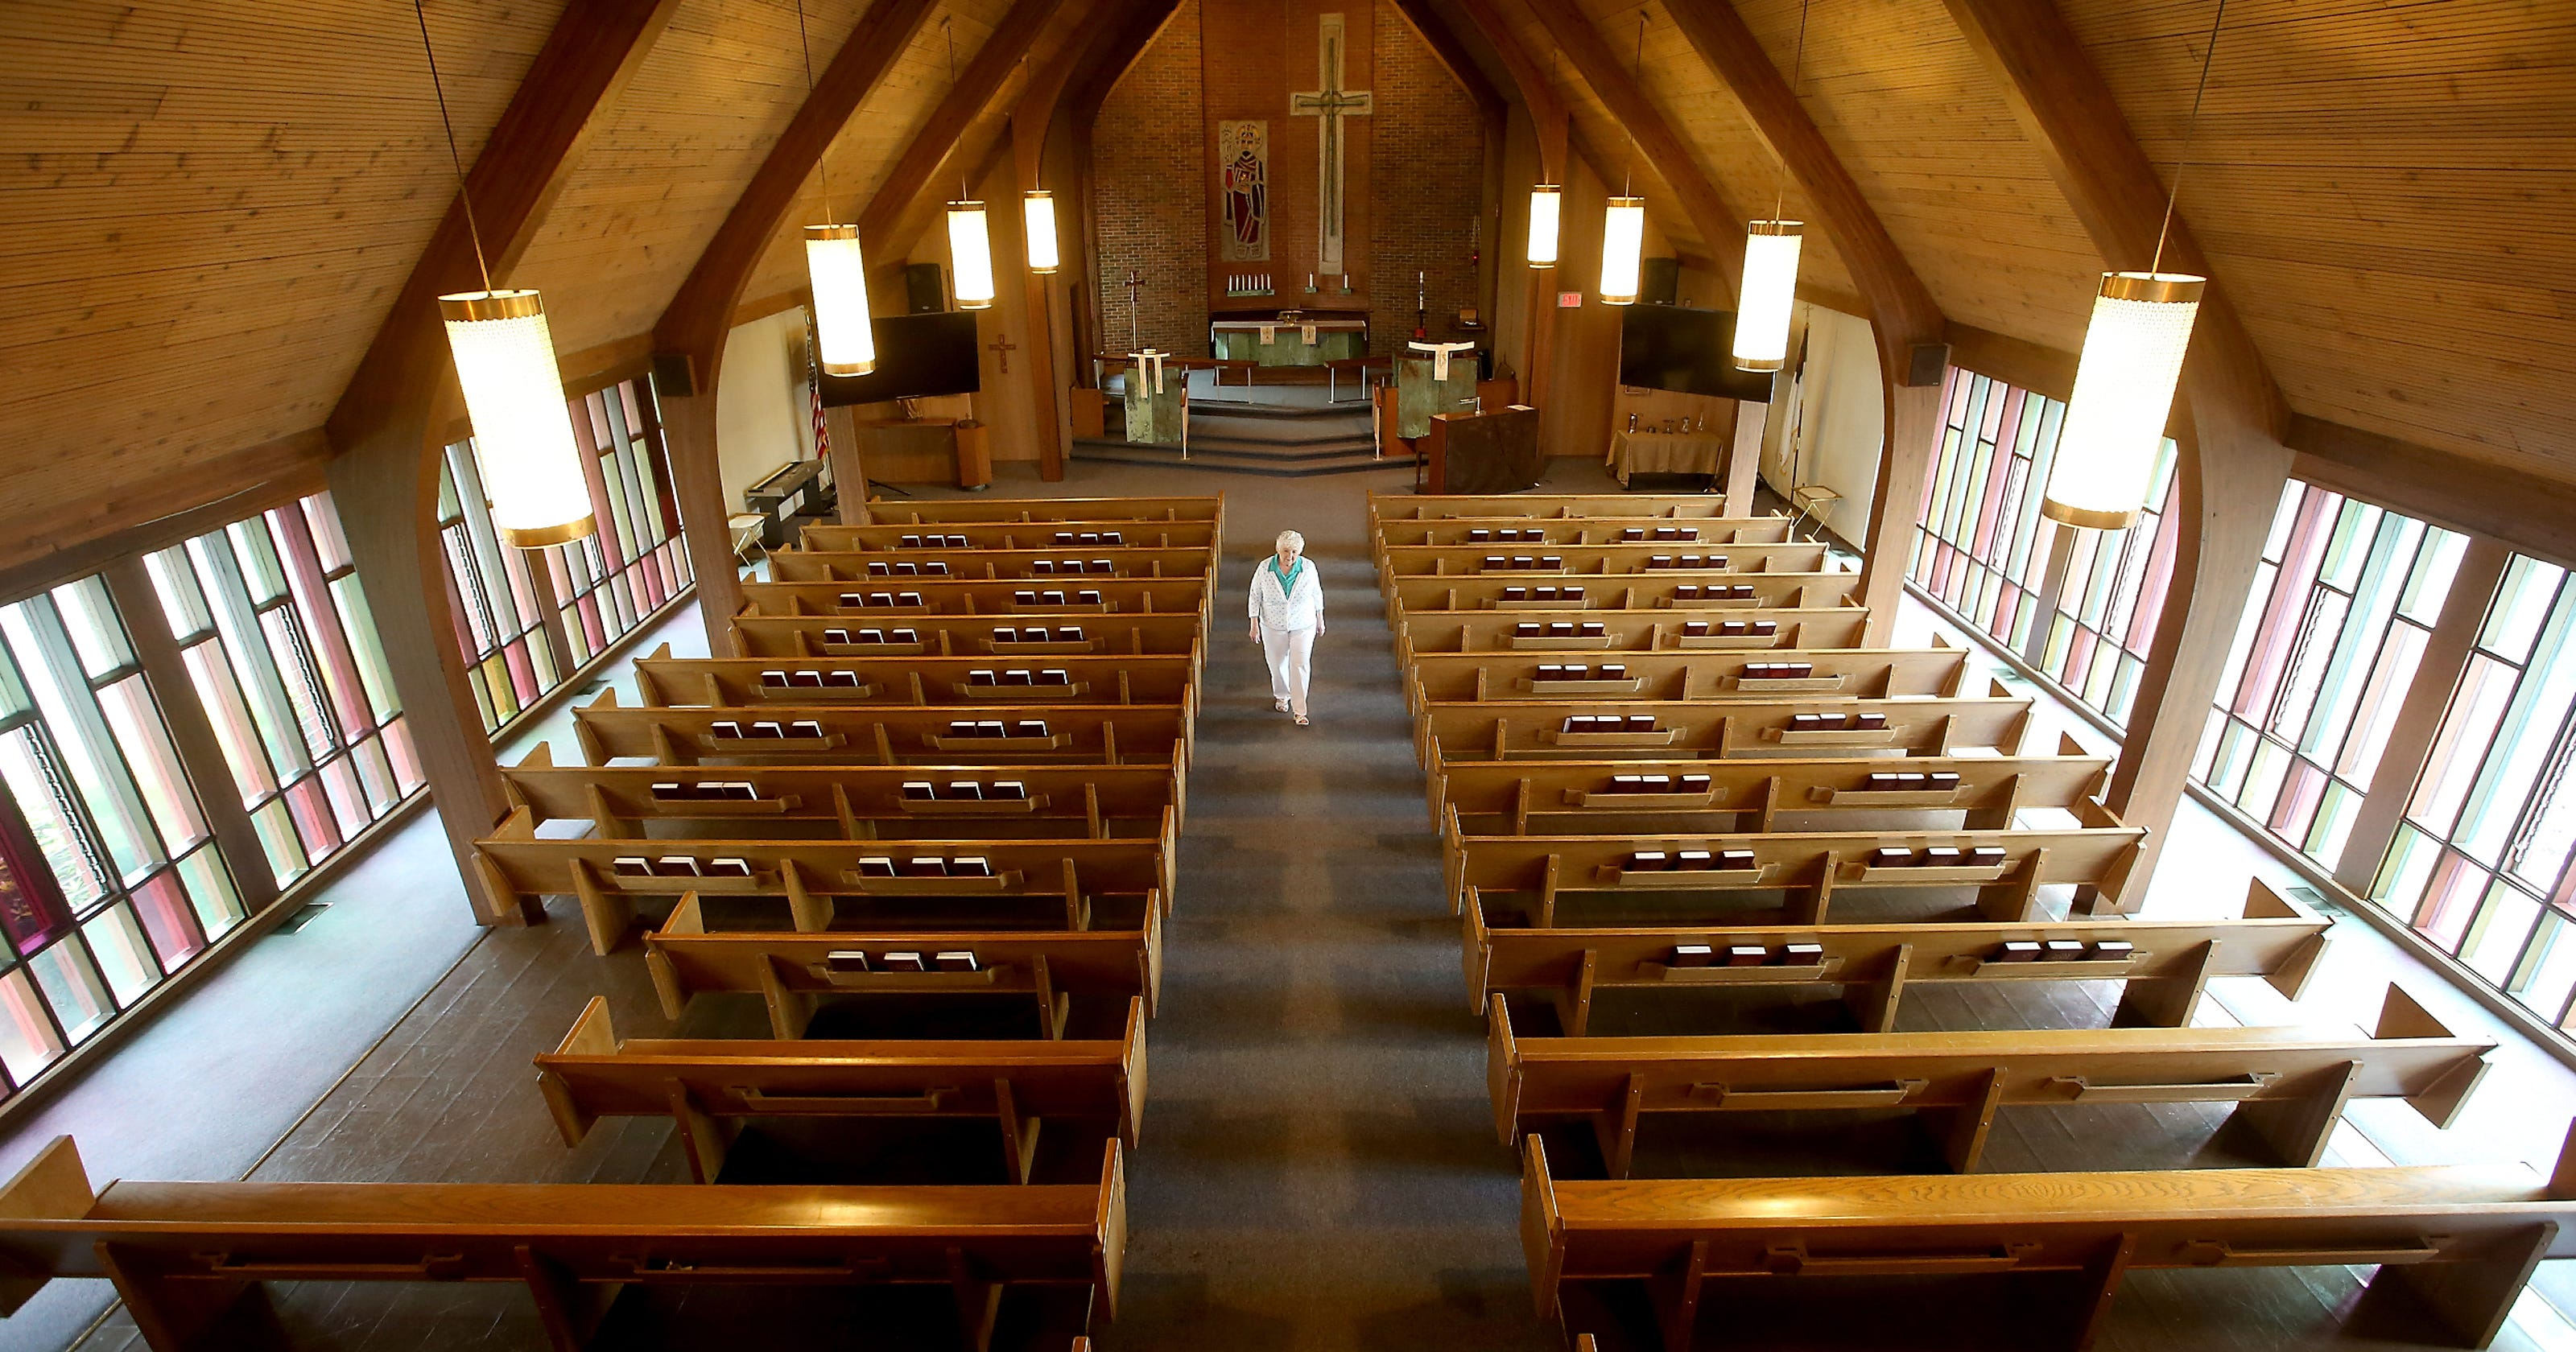 Bremerton church closing its doors for good after 114 years